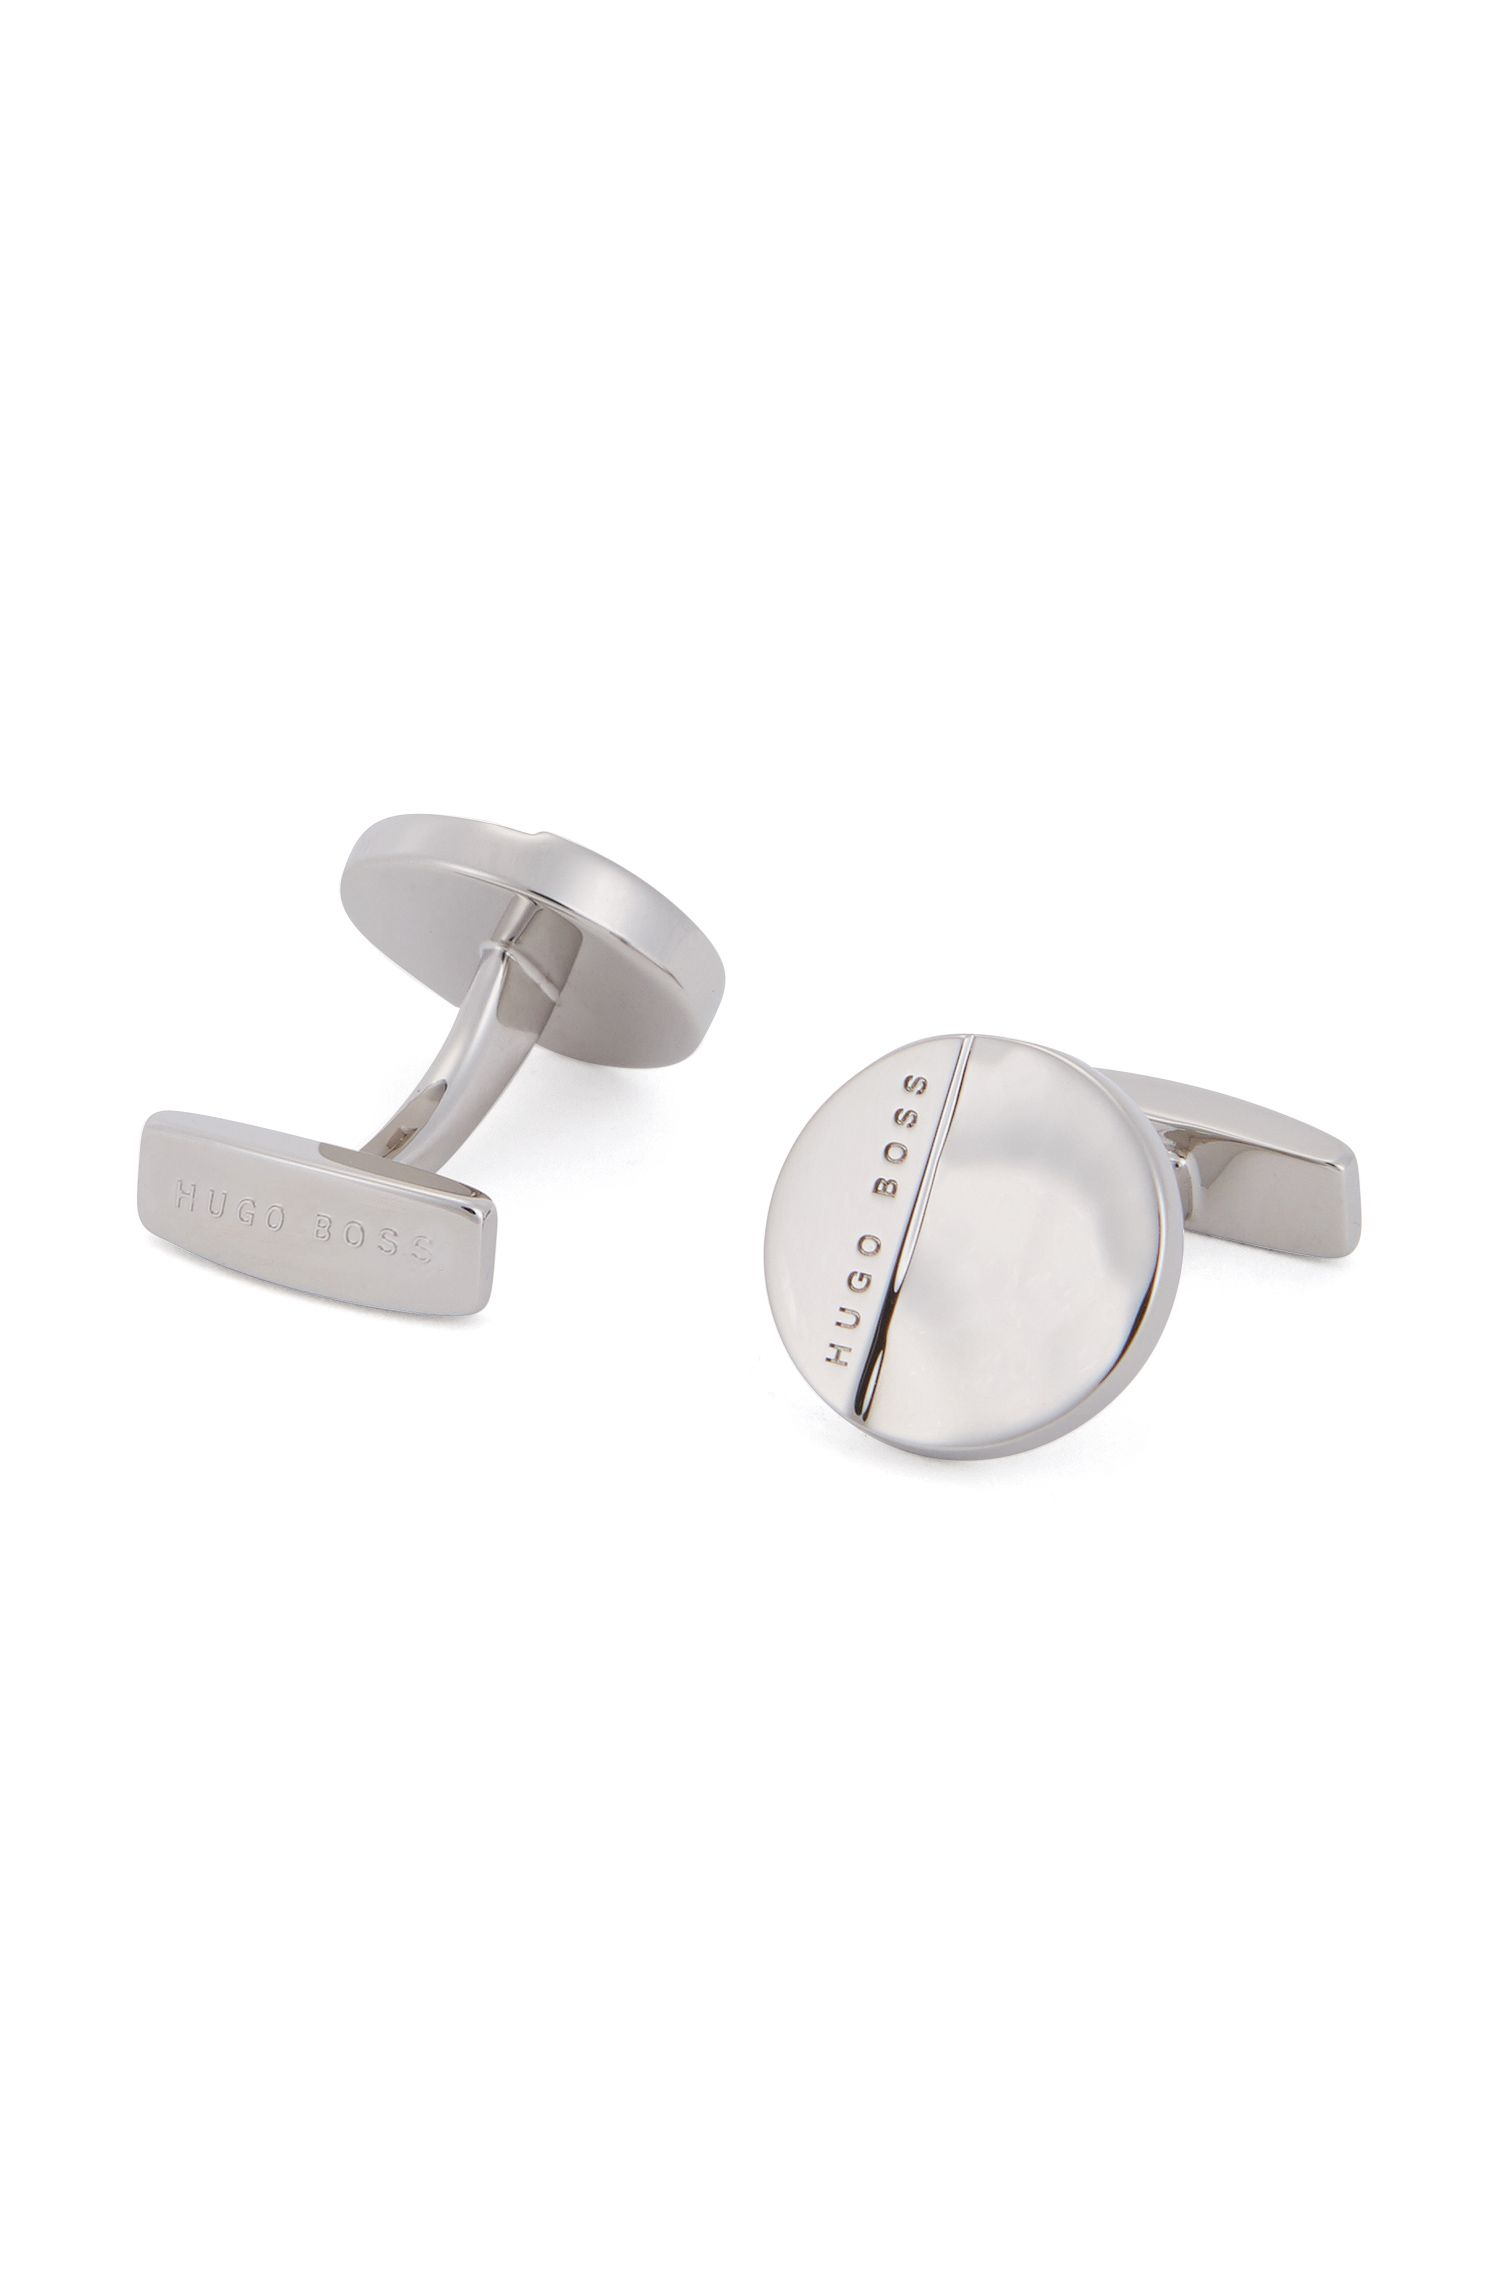 Round hand-polished hammered metal cufflinks with logo